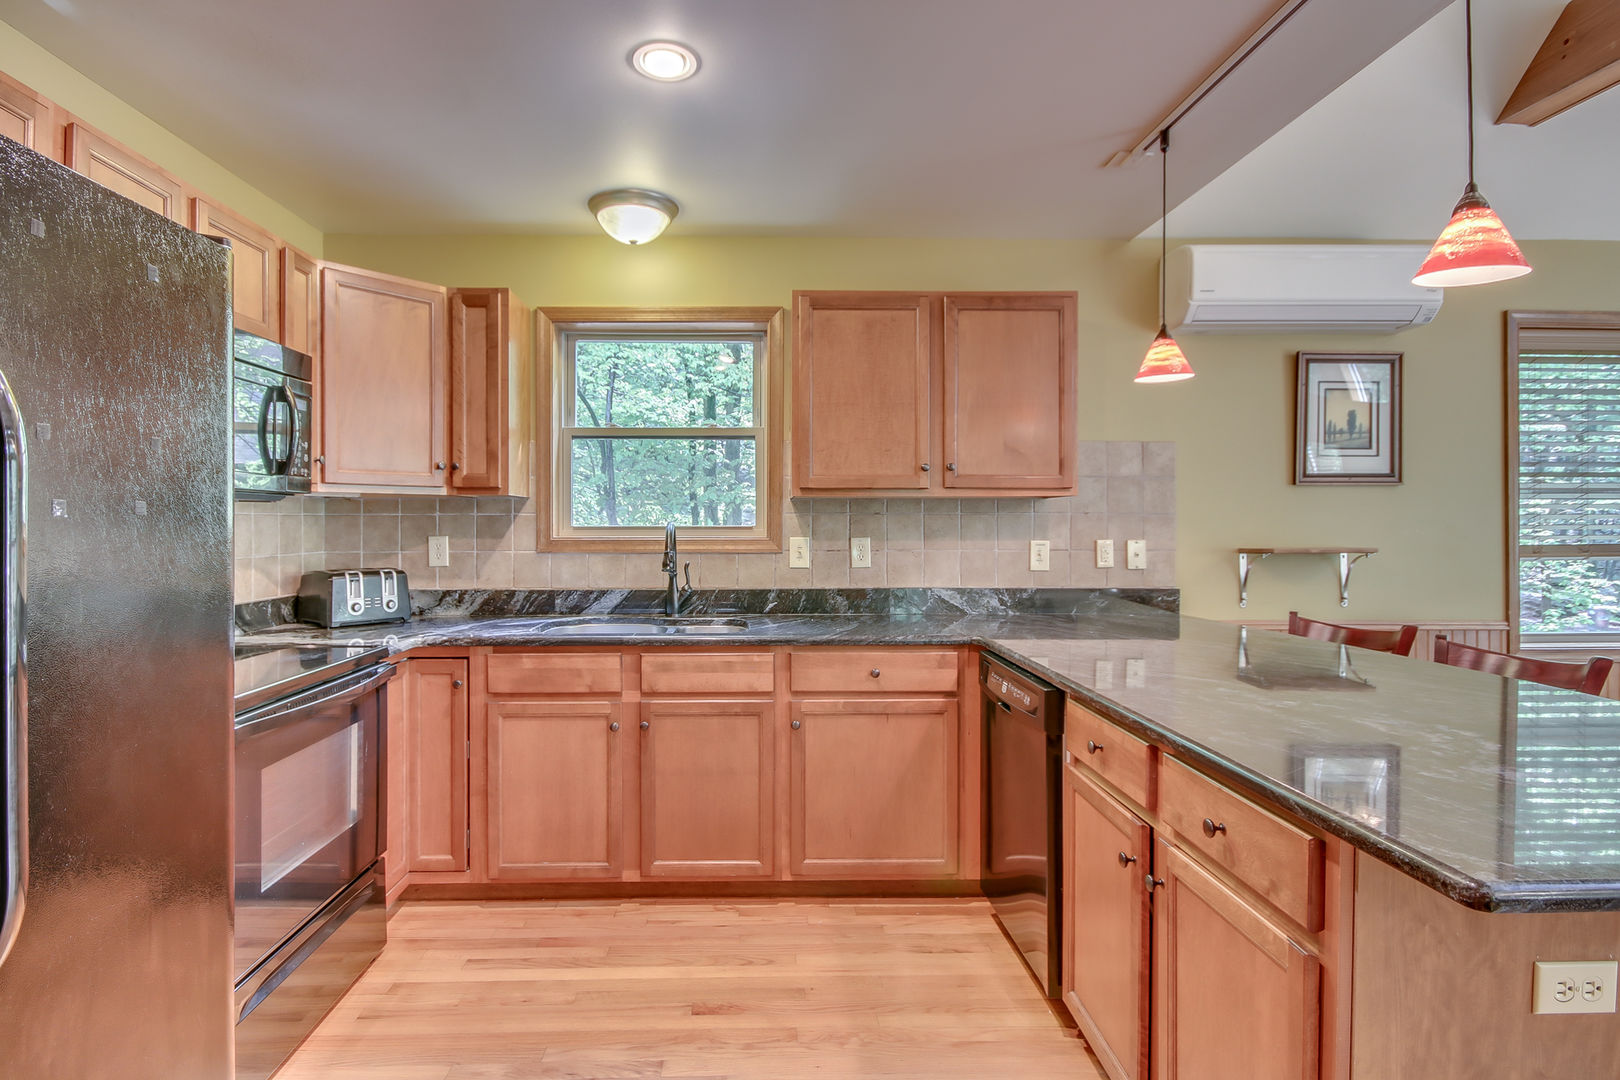 Kitchen Featuring Wooden Cabinets and Sink Facing Backyard.